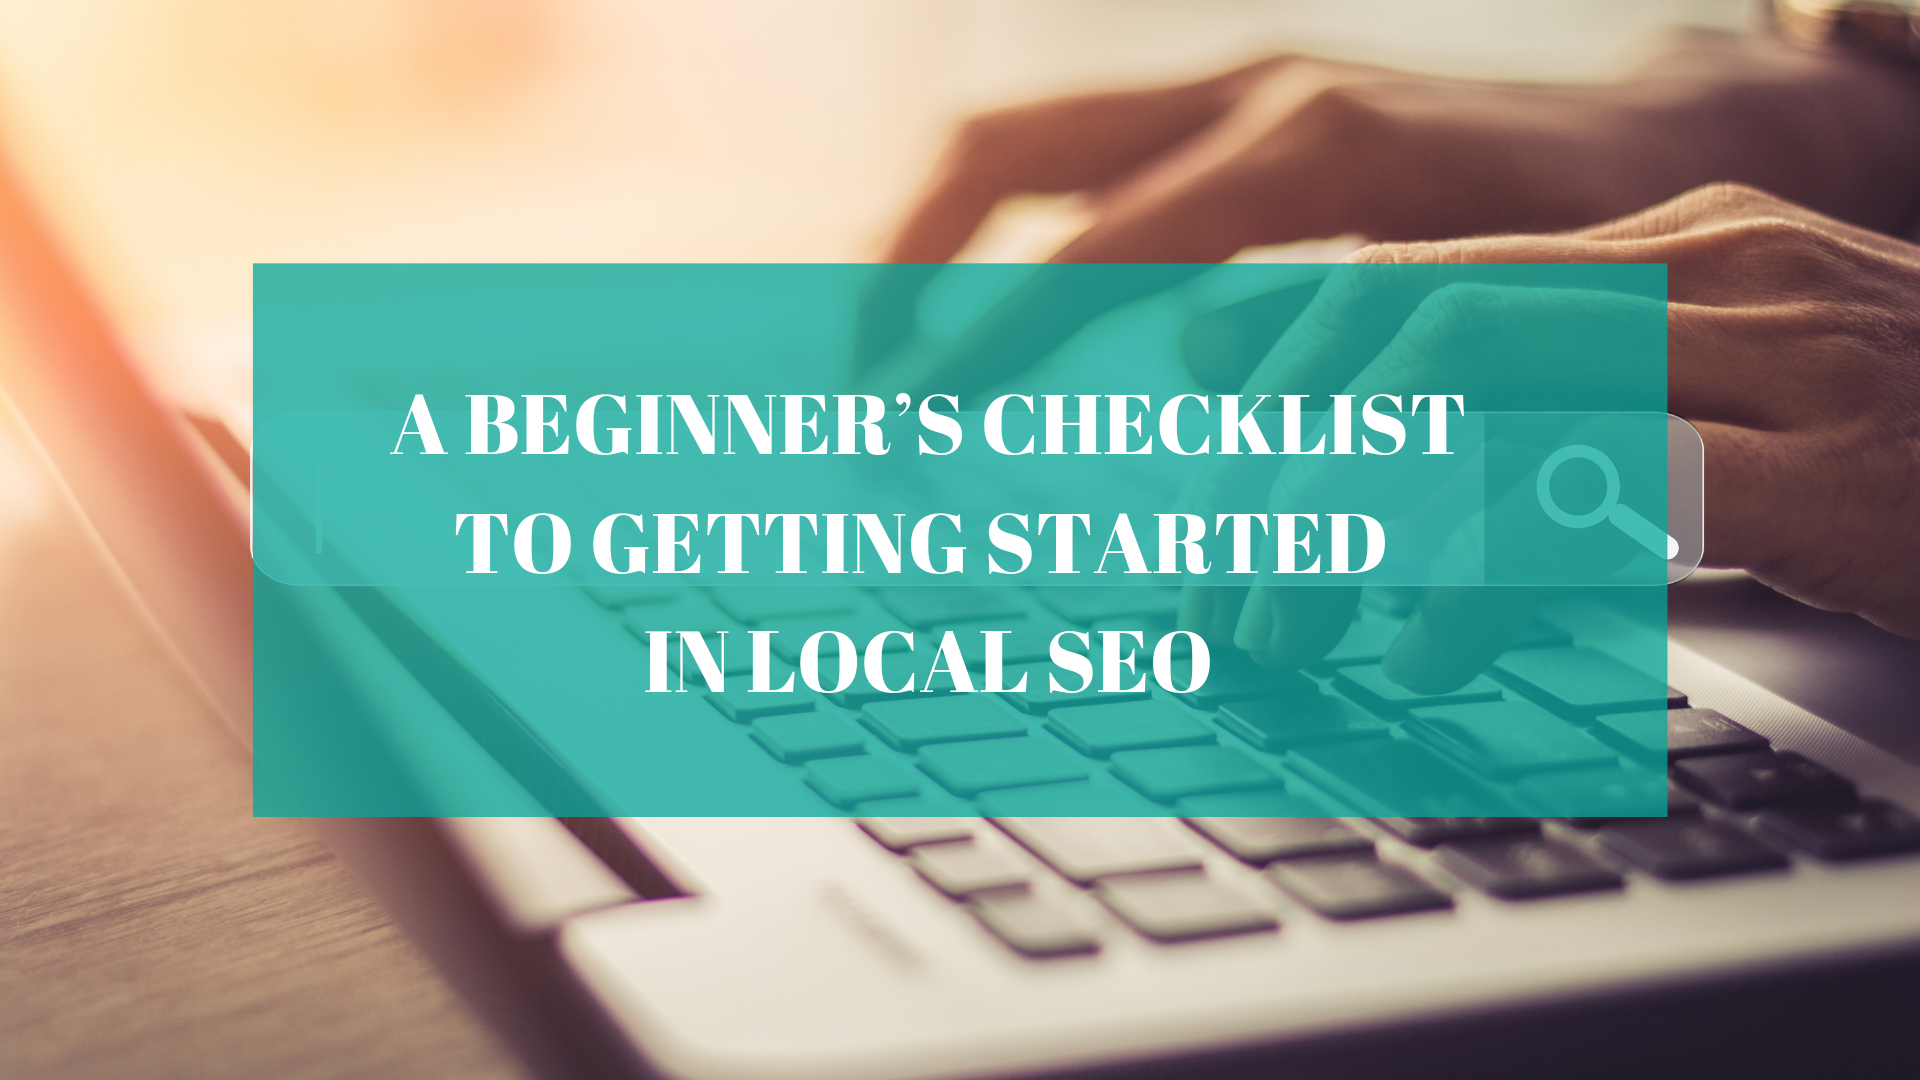 A Beginner's Checklist to Getting Started in Local SEO